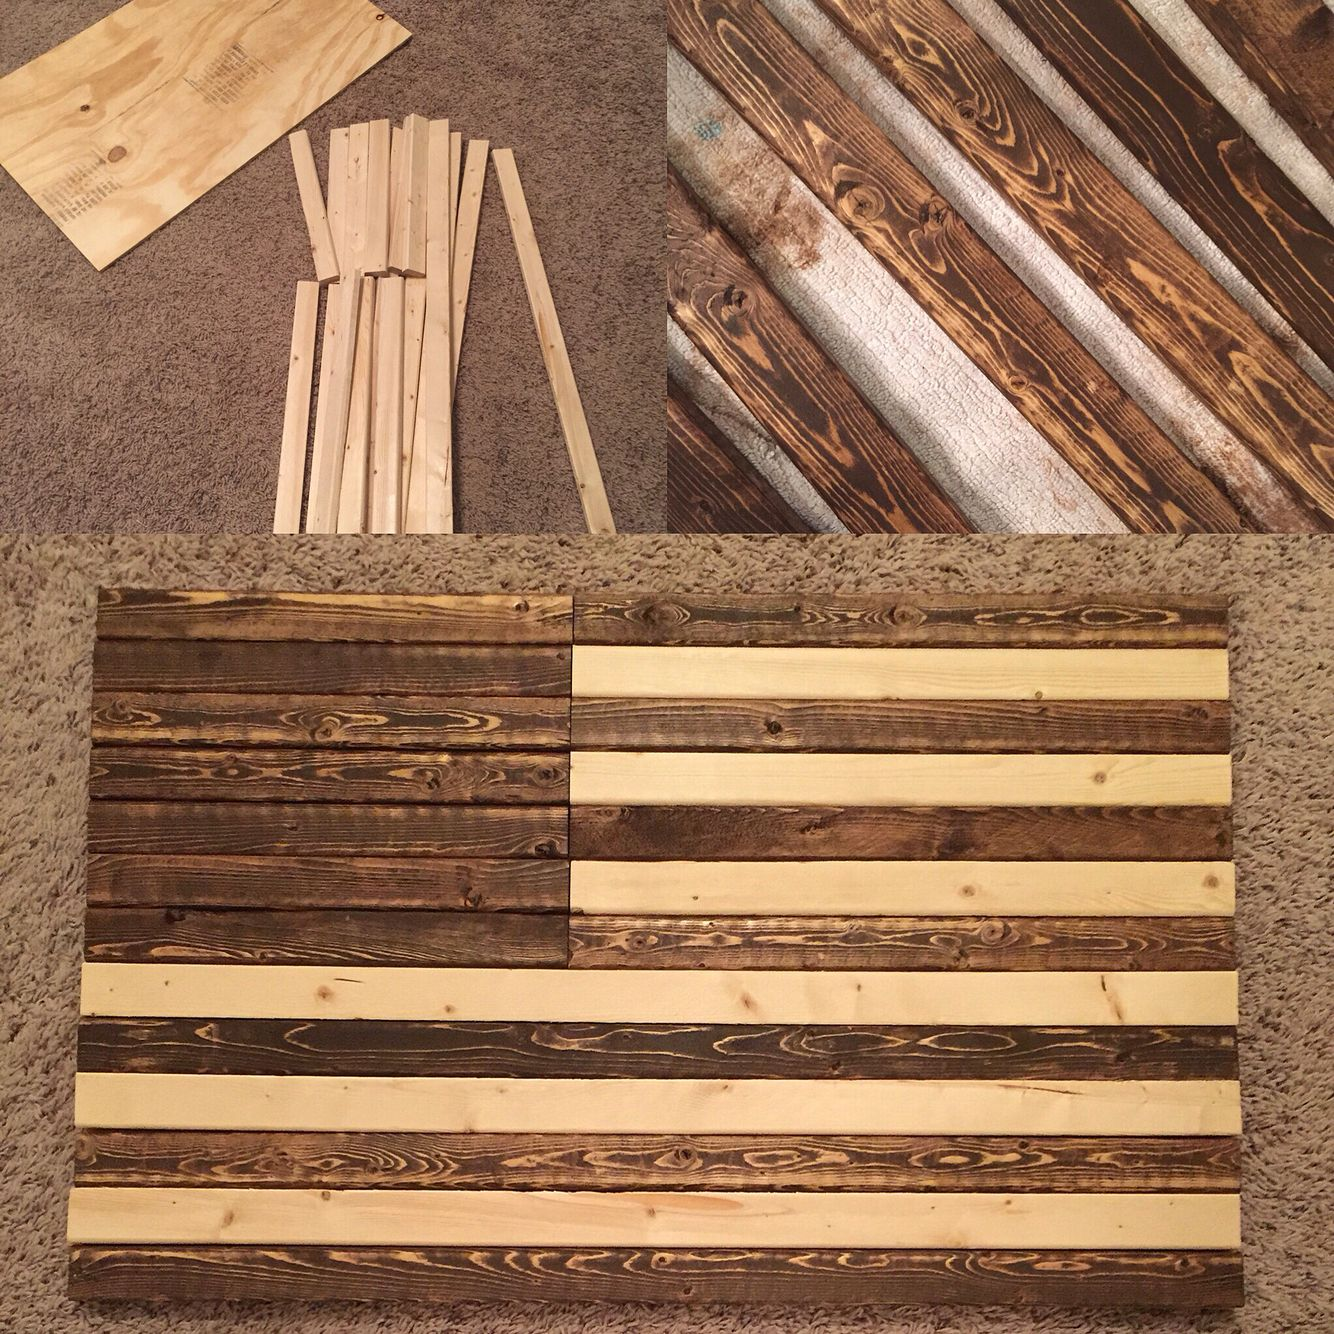 American Flag Made Out Of Wood 19 5 X 31 Used Liquid Nails And Clamps Stenciled And Painted The Stars American Flag Wood Wood Flag Wooden Flags Diy